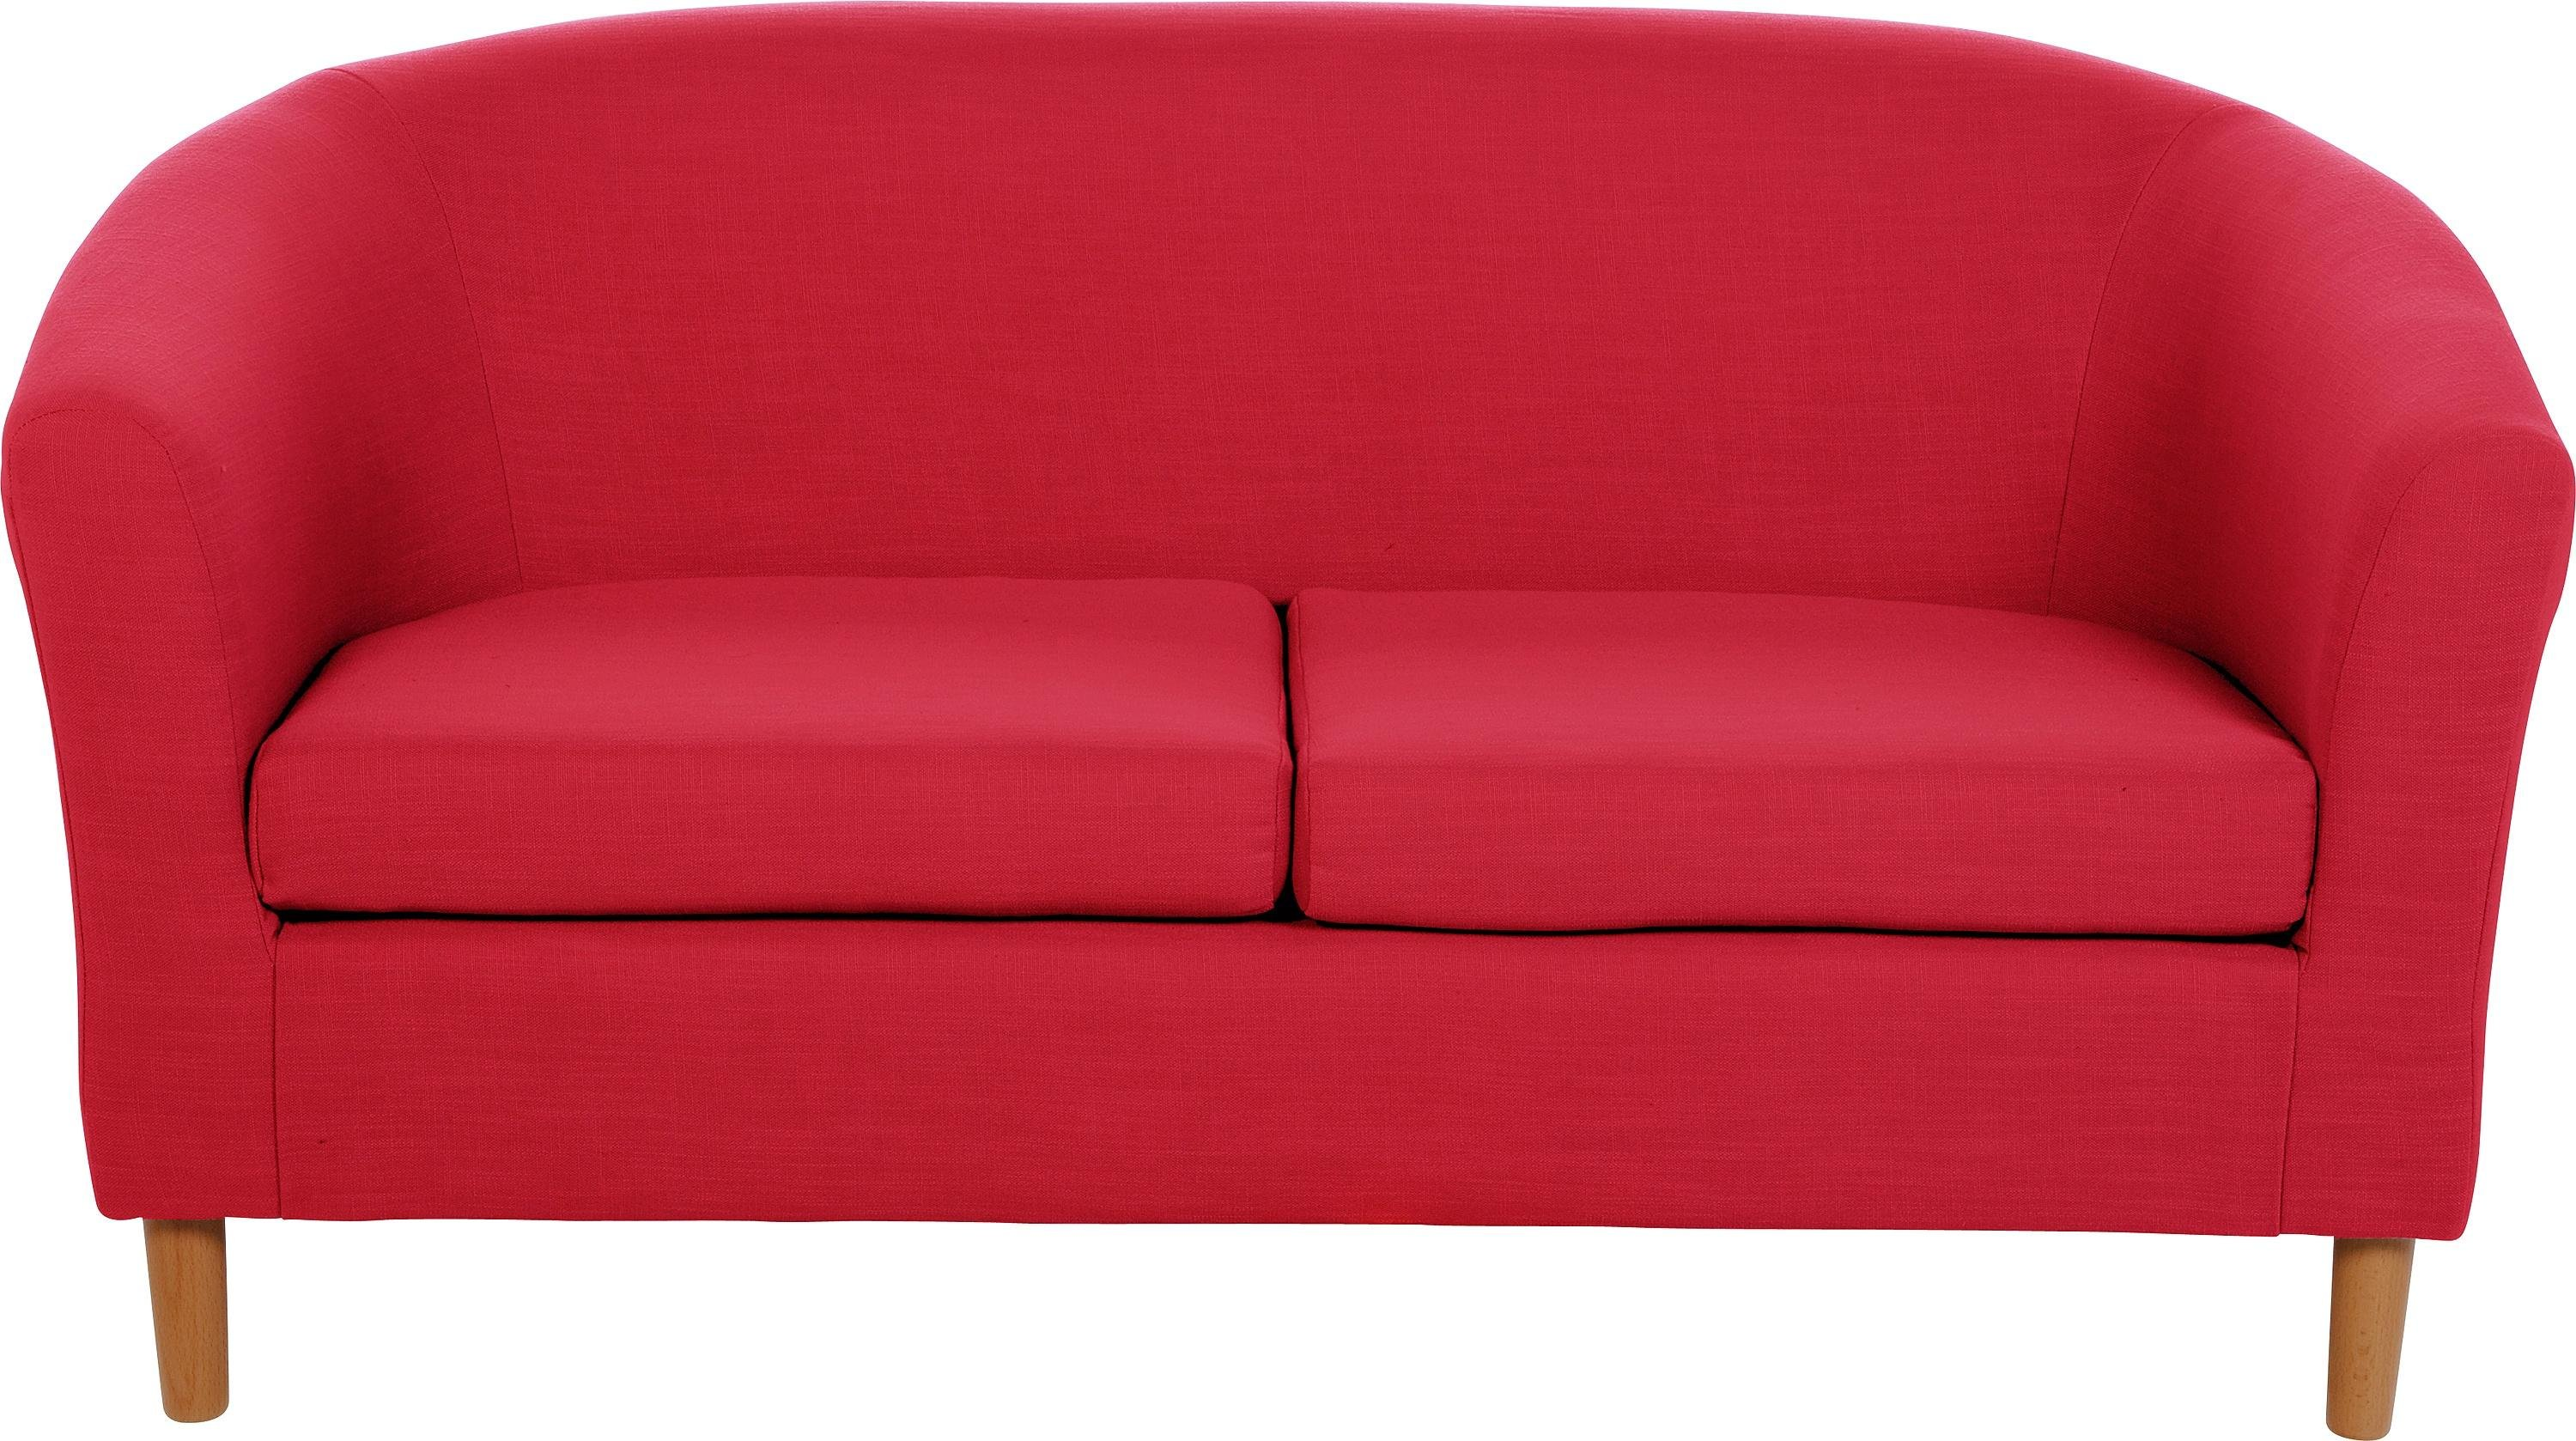 Sofa Settee Argos Buy Argos Home 2 Seater Fabric Tub Sofa Red Sofas Argos